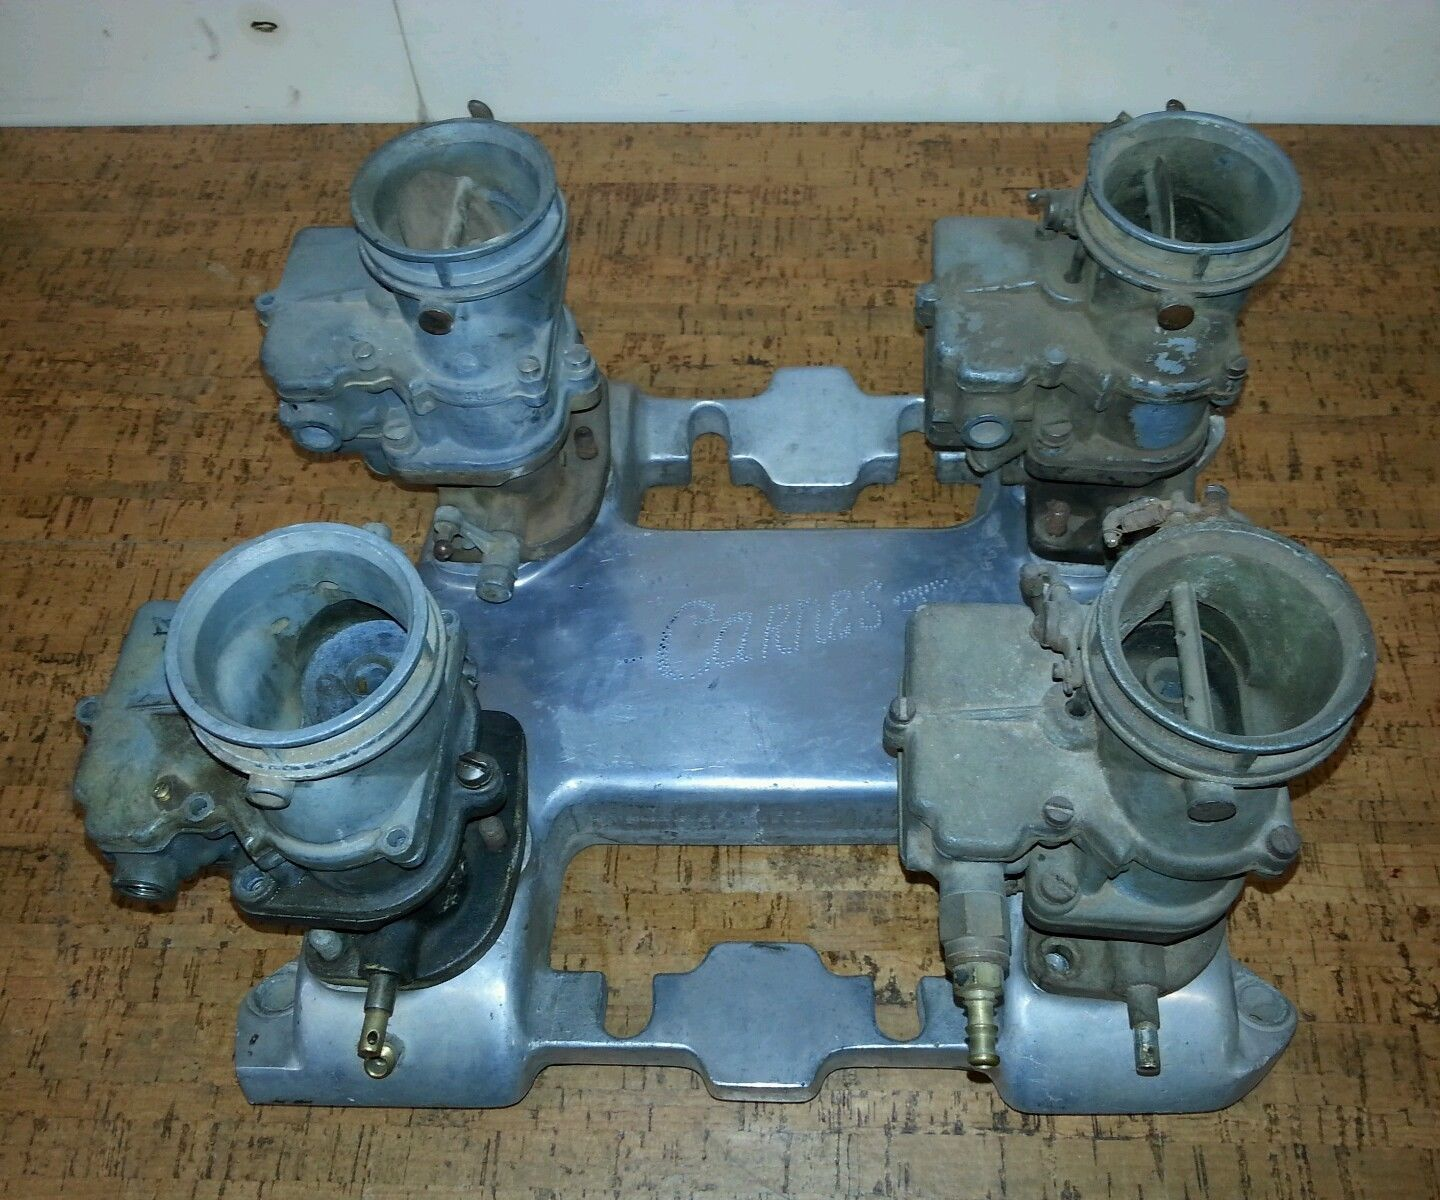 This Insanely Rare Horne Cadillac Intake Manifold Is The Coolest Speed Part On eBay Right Now